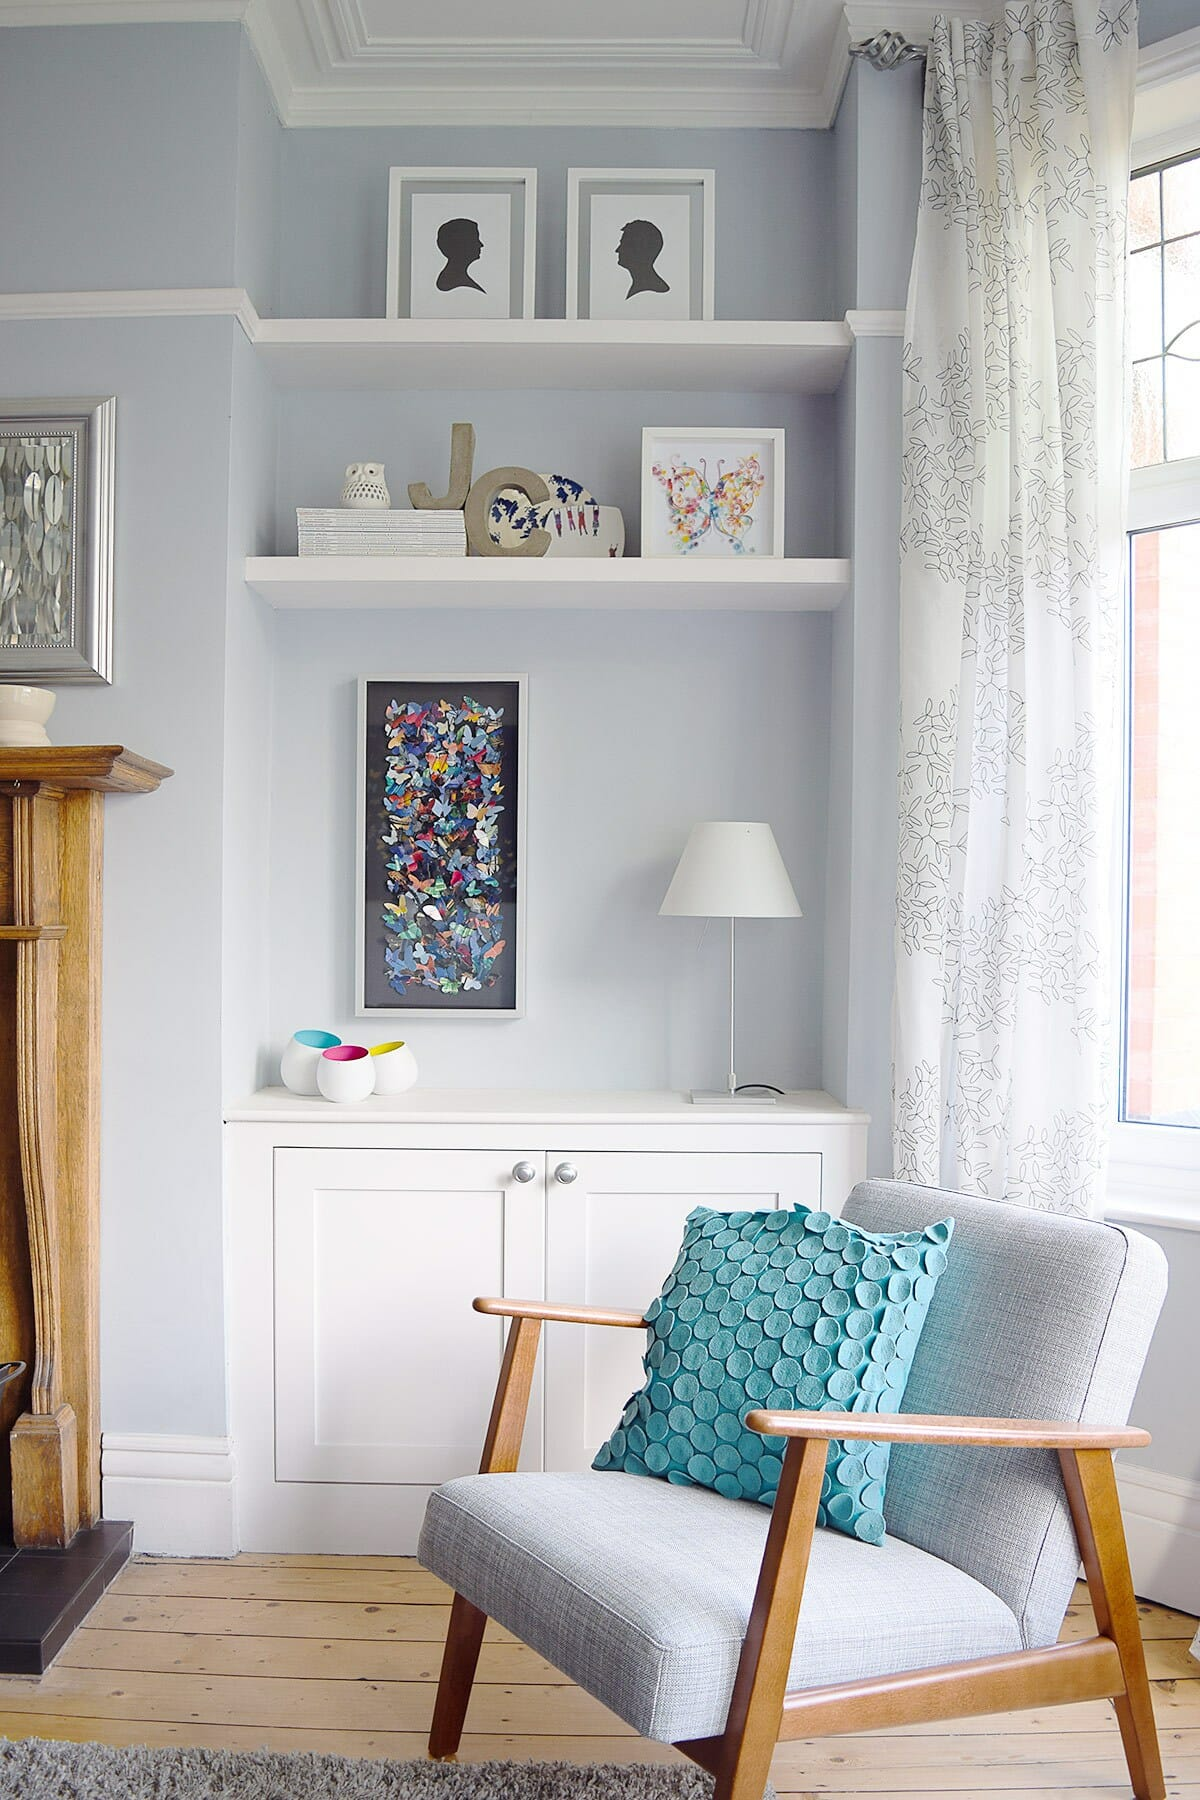 5 Small Apartment Decorating Tips To Make The Most of Your ...